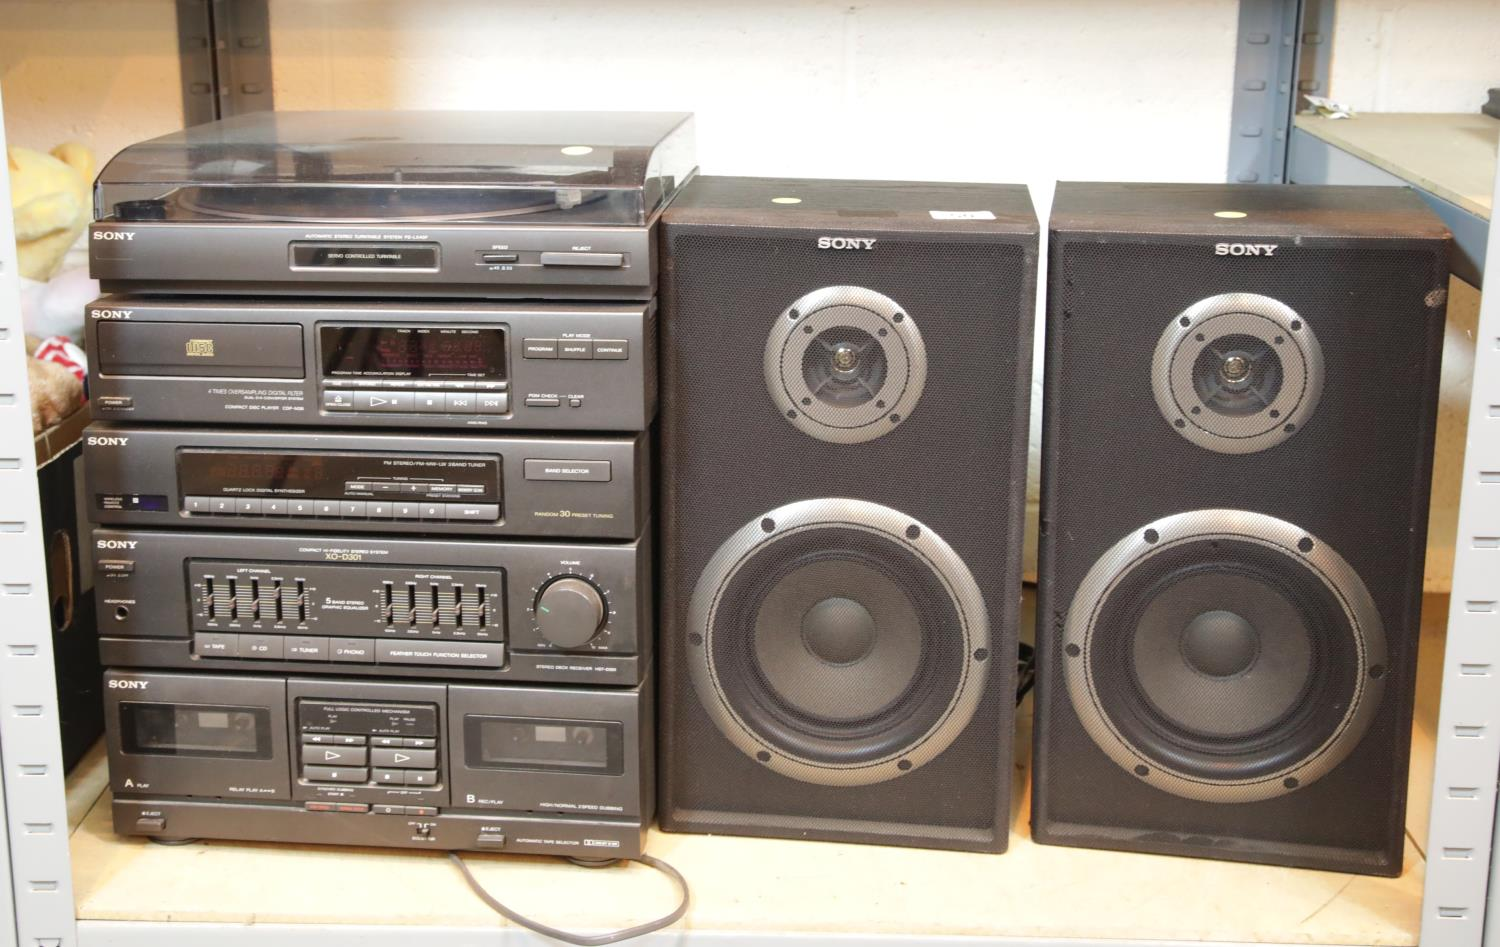 Lot 50 - Sony stack HiFi system, two speakers, CDs and cassettes etc. This lot is not available for in-